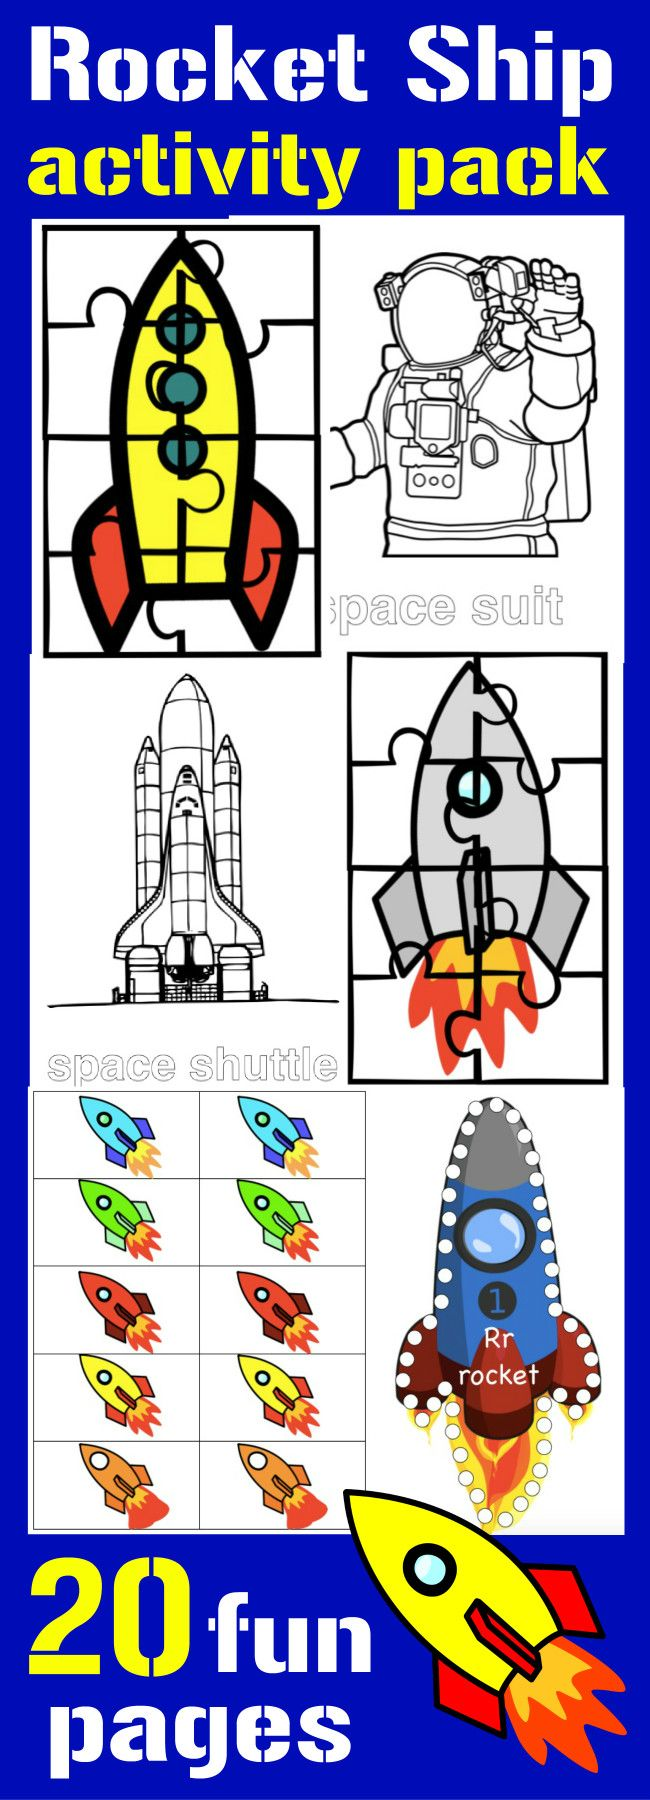 Fun for your favorite astronaut! 20 Activity pages about rocket ships from HappyandBlessedHome.com DIY kids' activities with fun graphics - worksheets and puzzles can be used for a birthday party or game. Ad #CambioConfiable